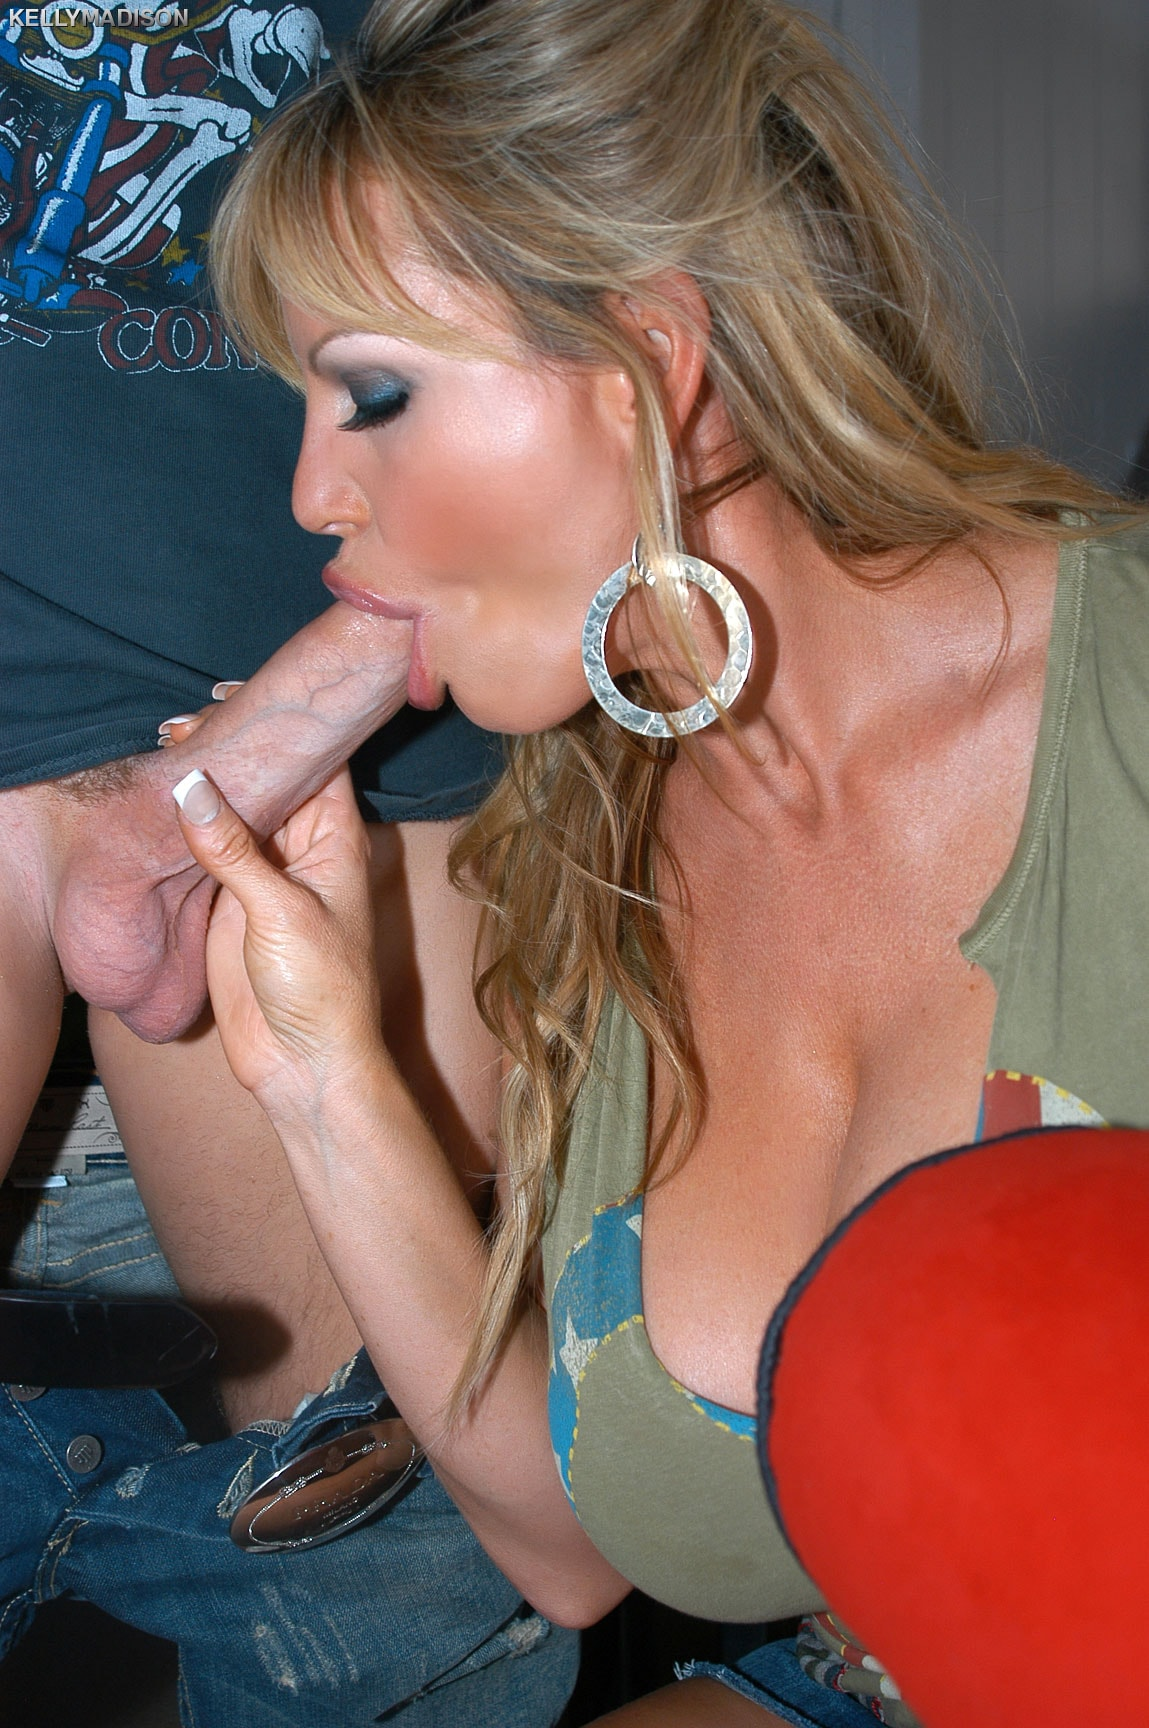 Kelly madison has a big cock blowjob fetish